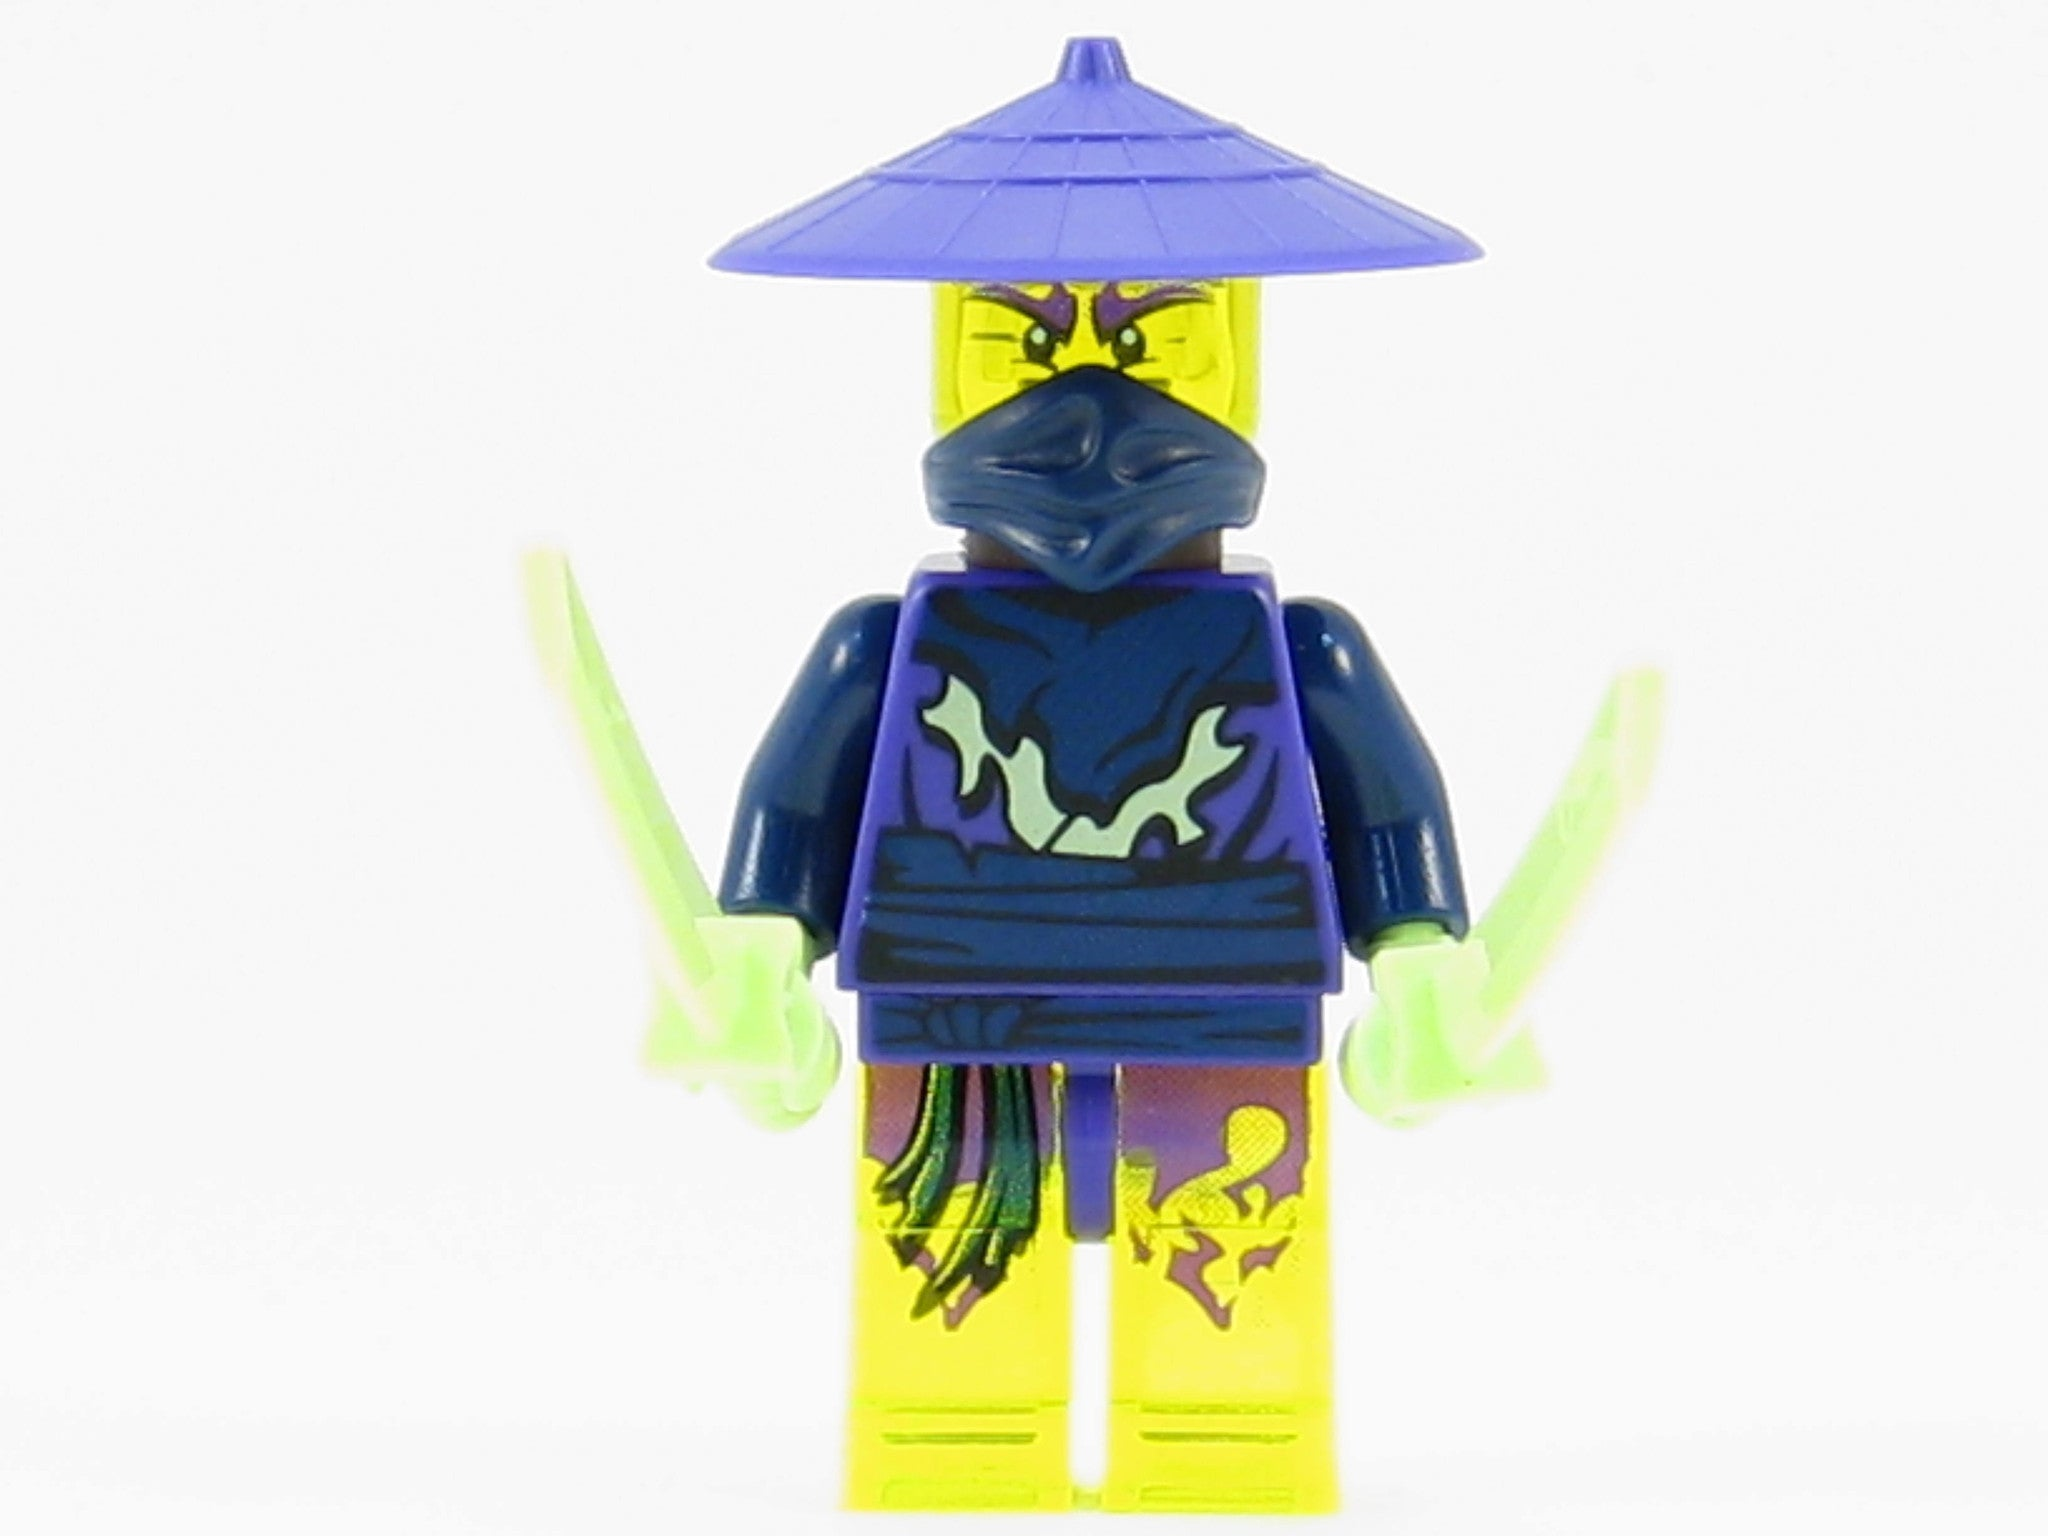 LEGO Ninjago Cowler Ghost Ninja Warrior Minifigure with Swords NEW 2015 70736